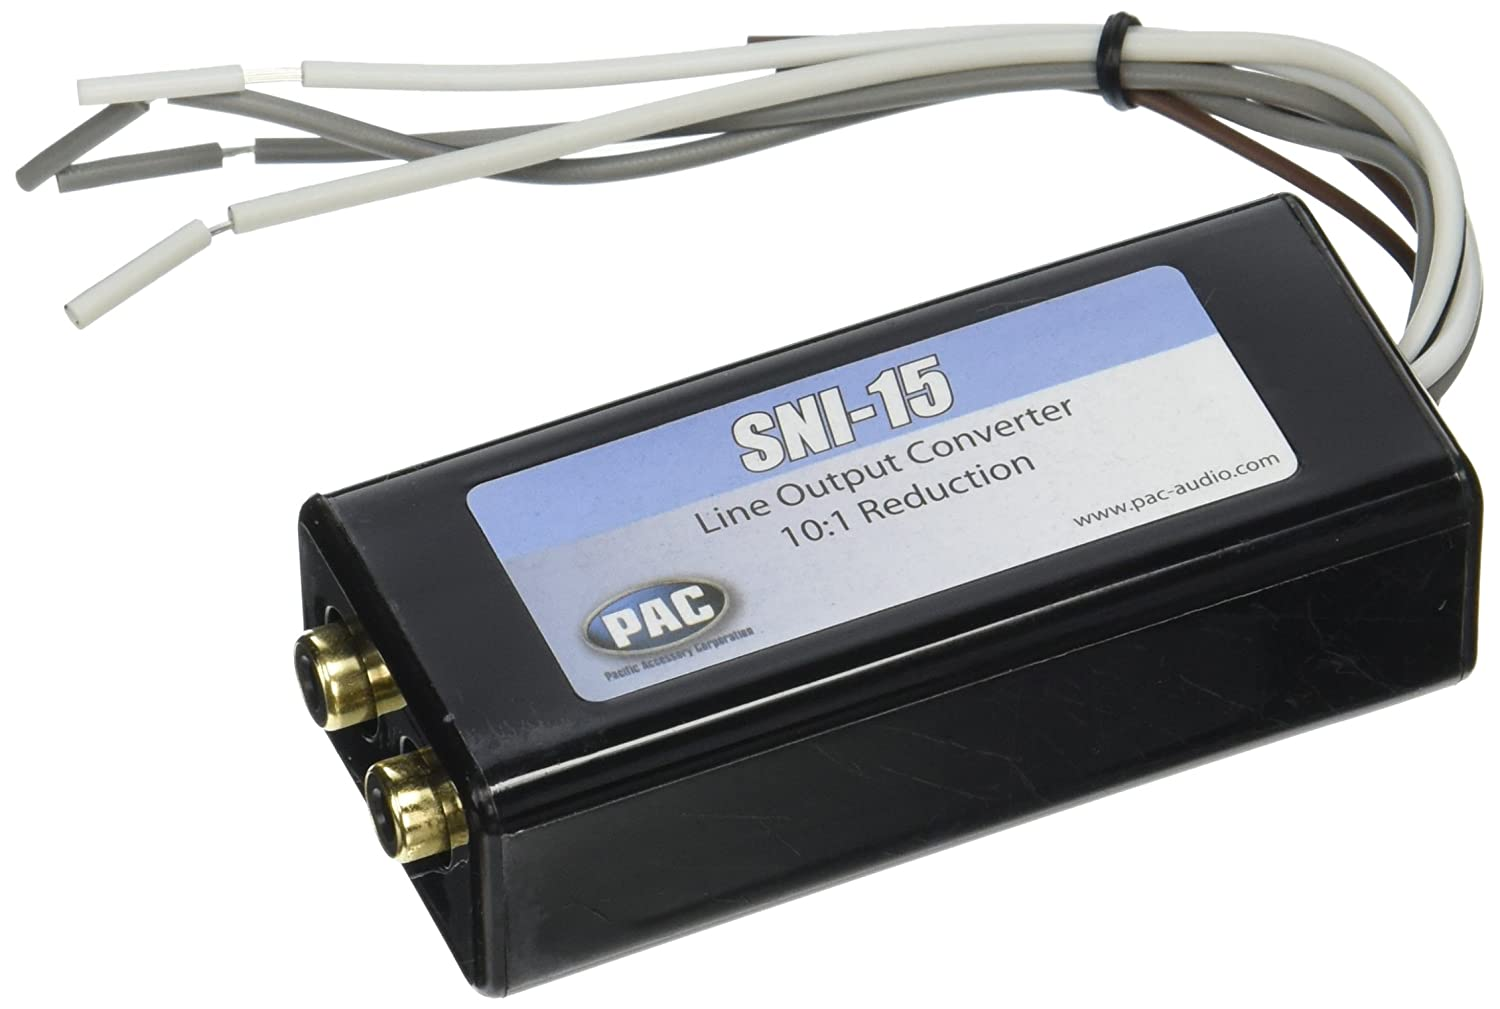 71UQXrYWczL._SL1500_ amazon com pac sni15 line output converter for adding amplifier Line Out Converter Wiring Common Ground at aneh.co